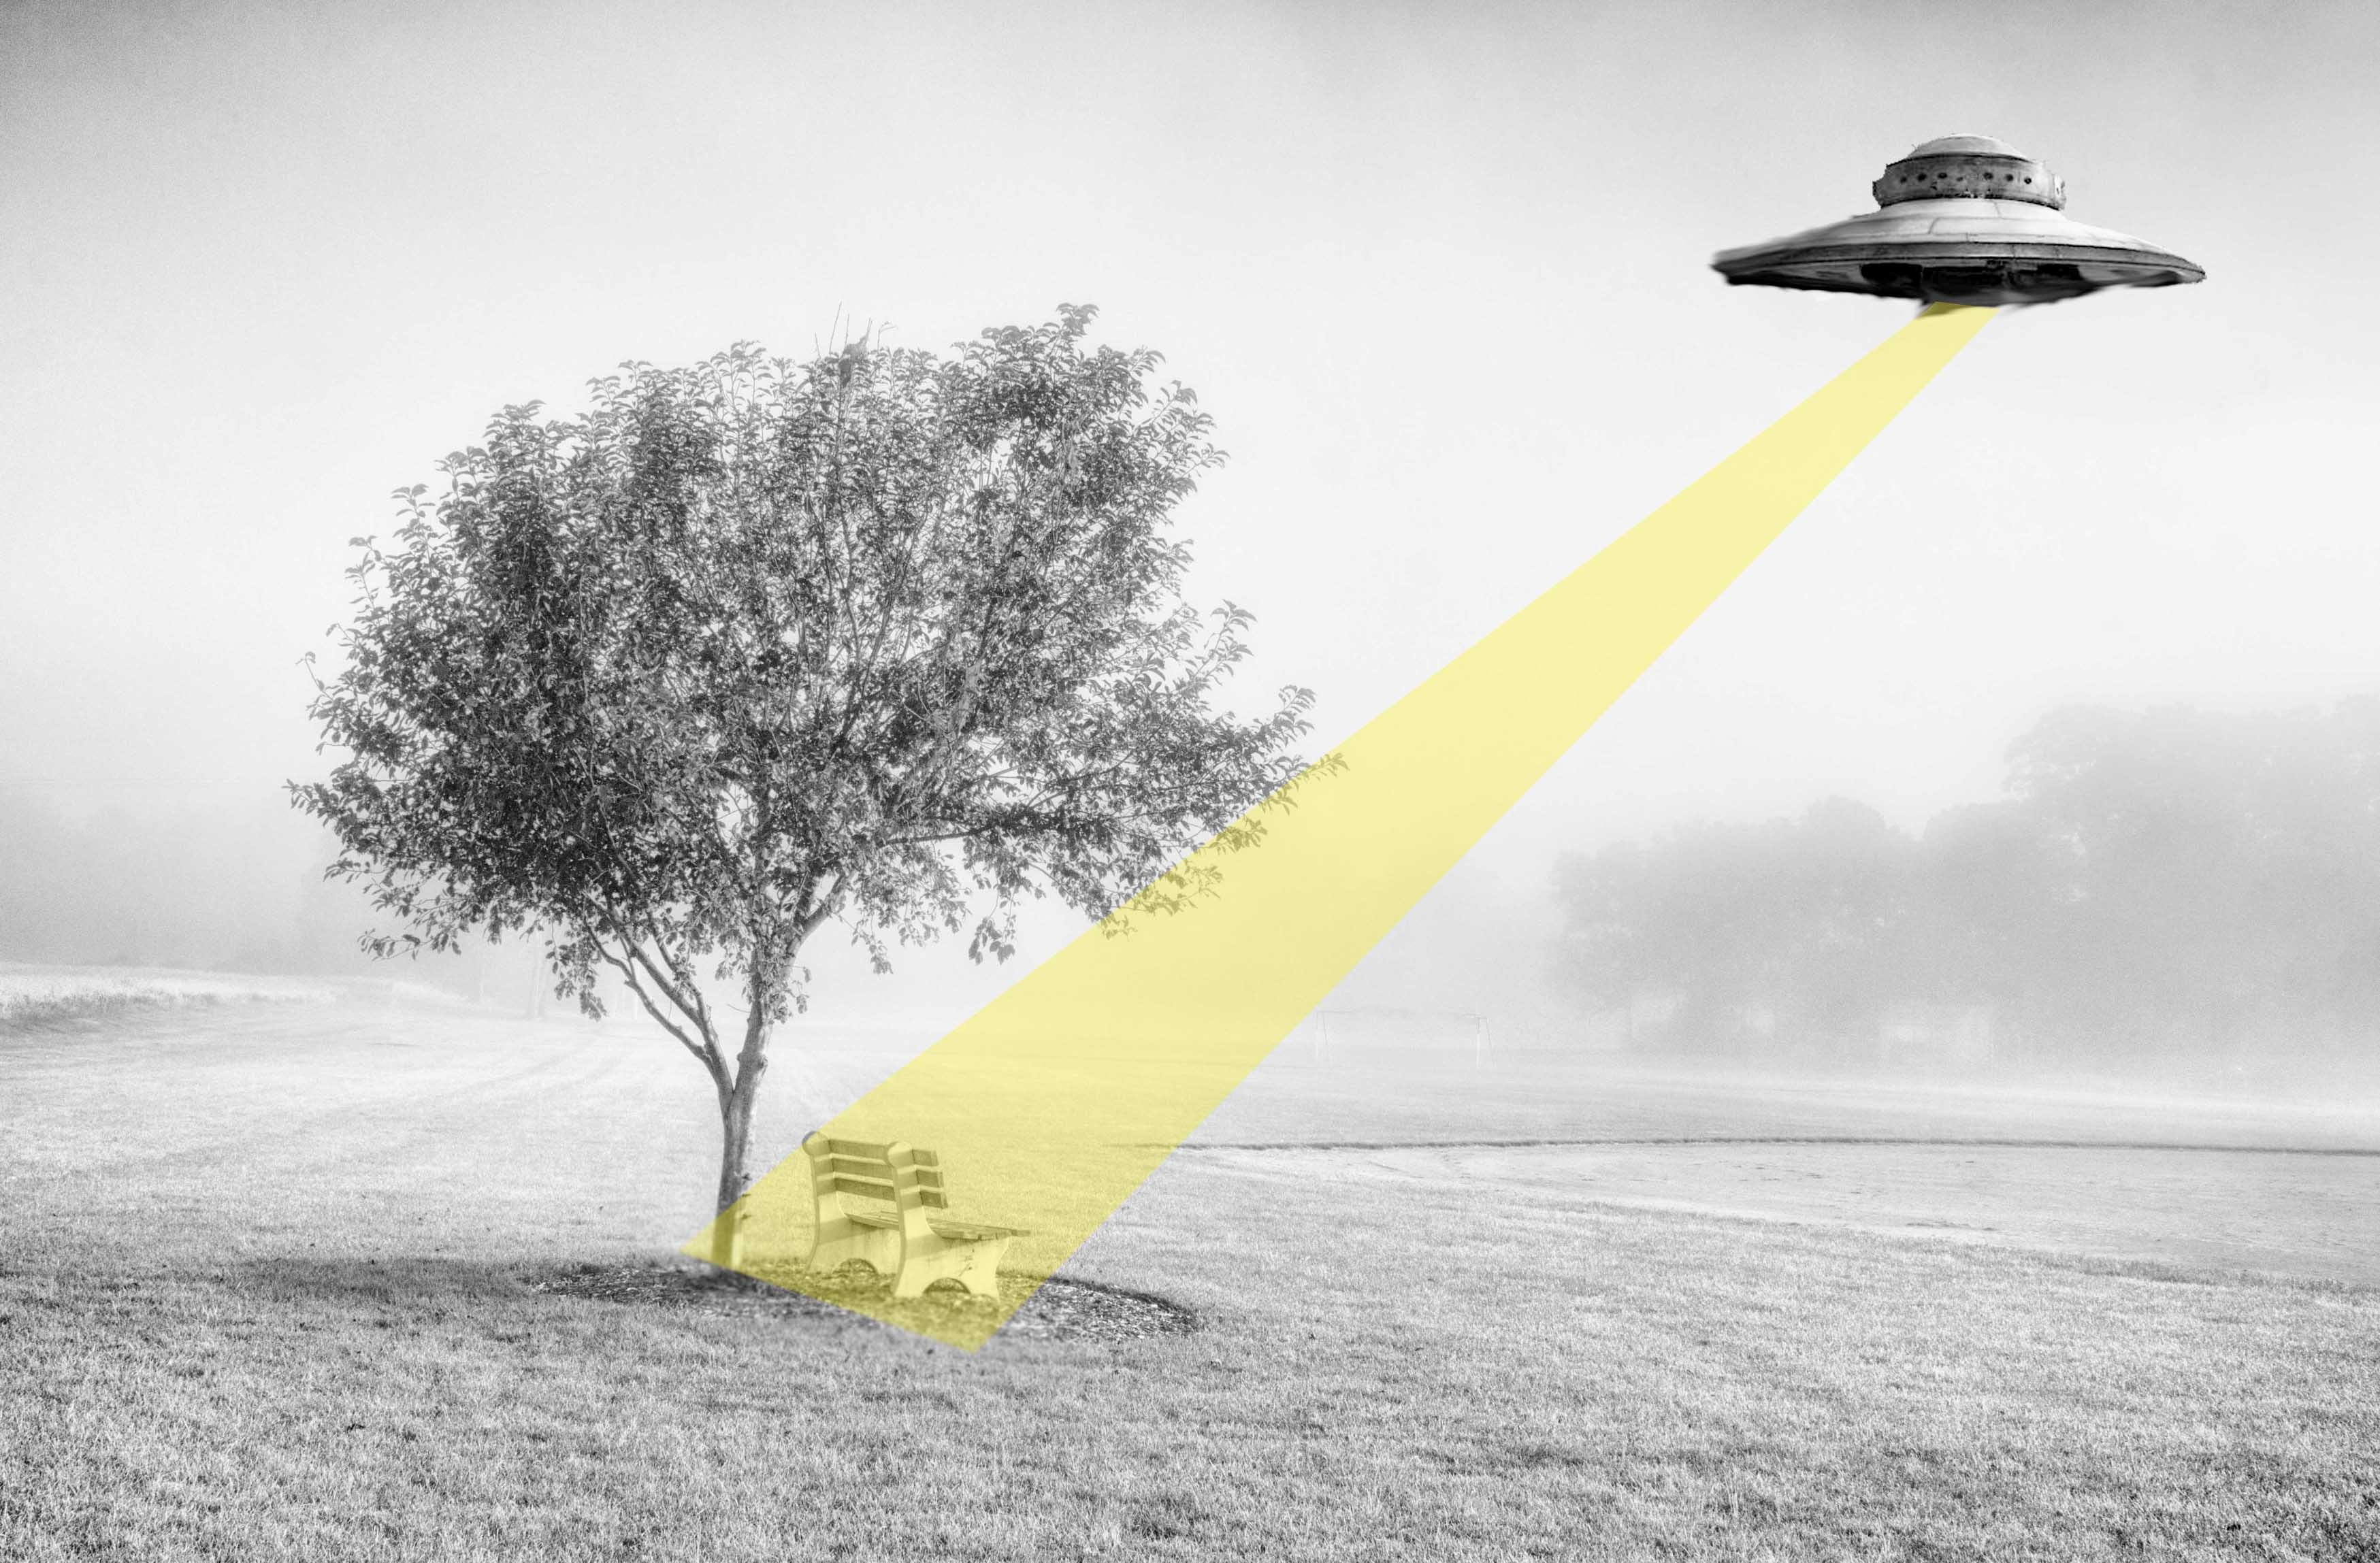 The Truth About Those Alien Alloys In The New York Times Ufo Story Scientific American